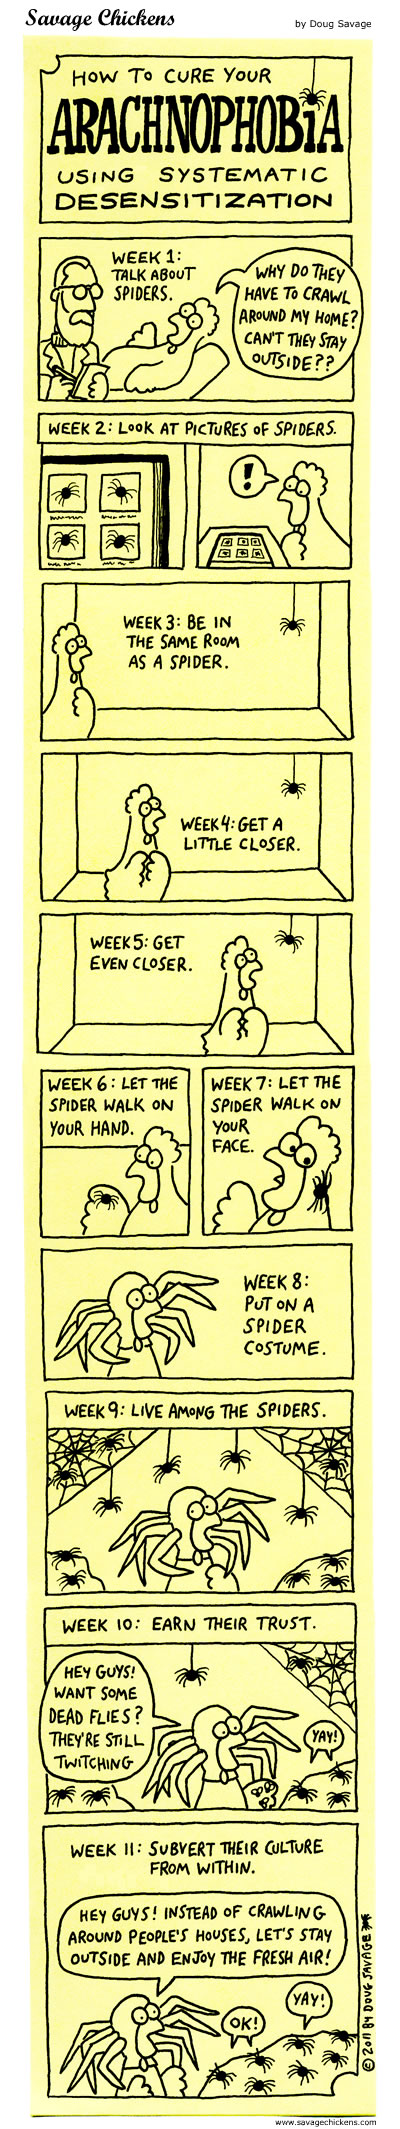 How To Cure Your Arachnophobia